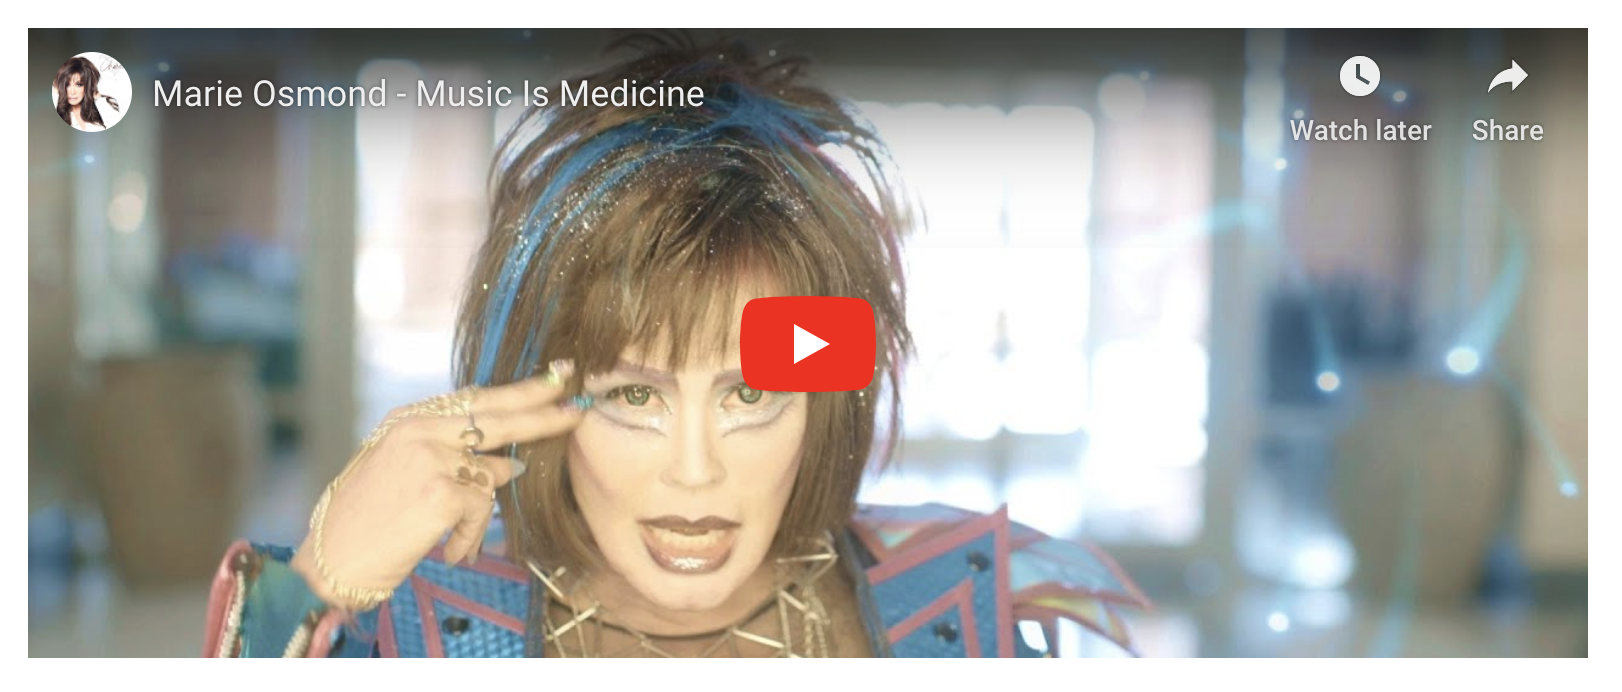 Marie Osmond: Marie Osmond Music is Medicine